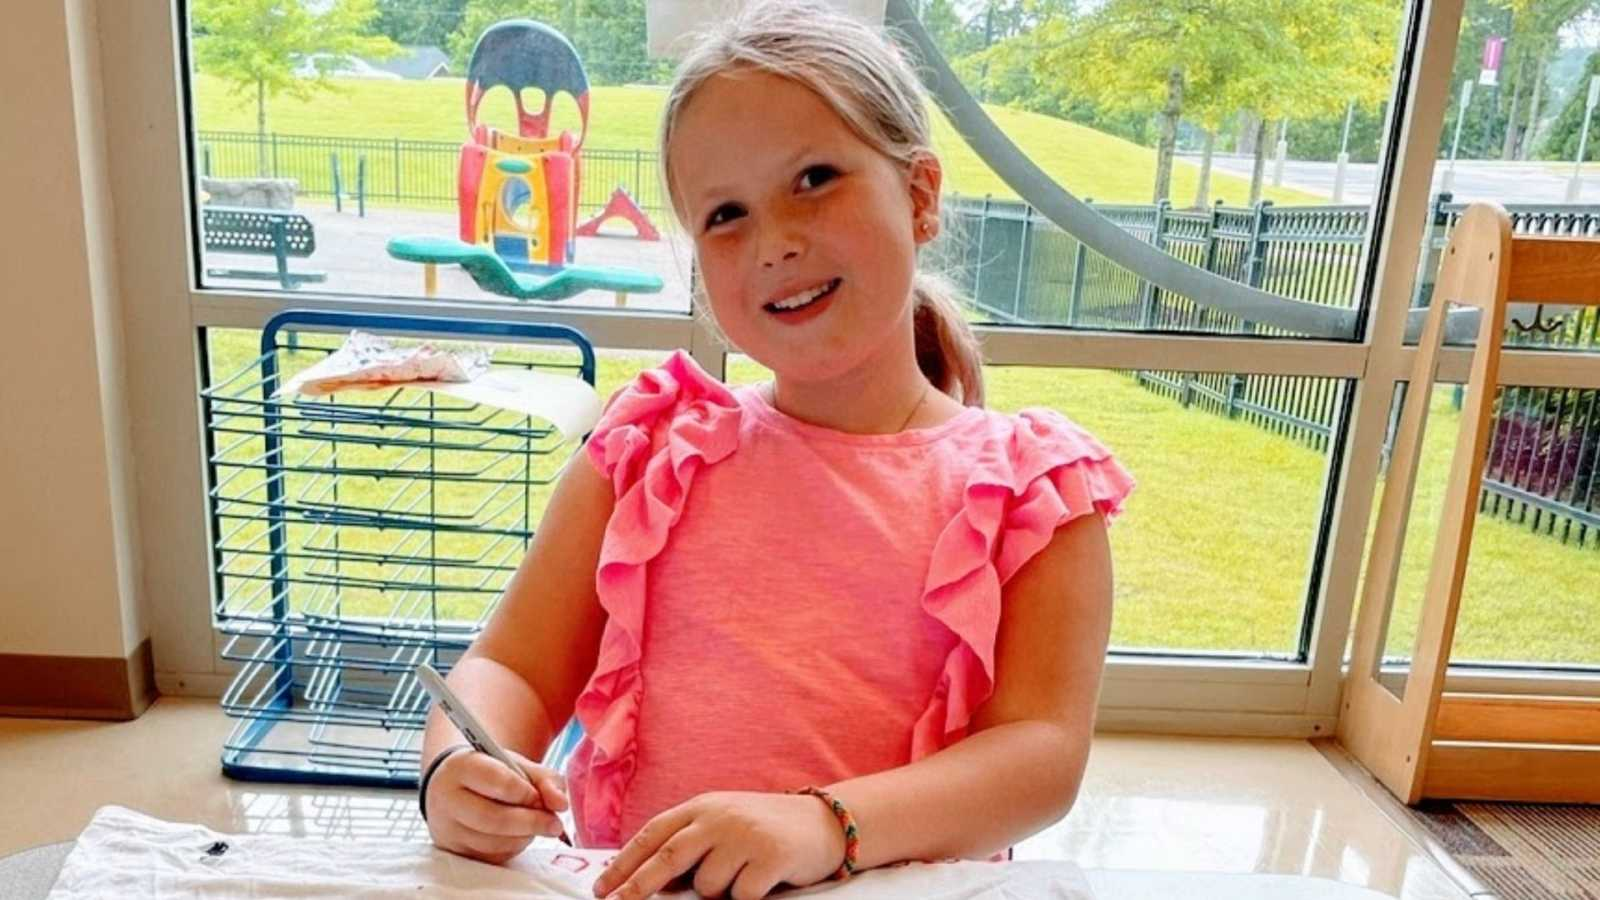 A young girl wearing a pink shirt sits at a table